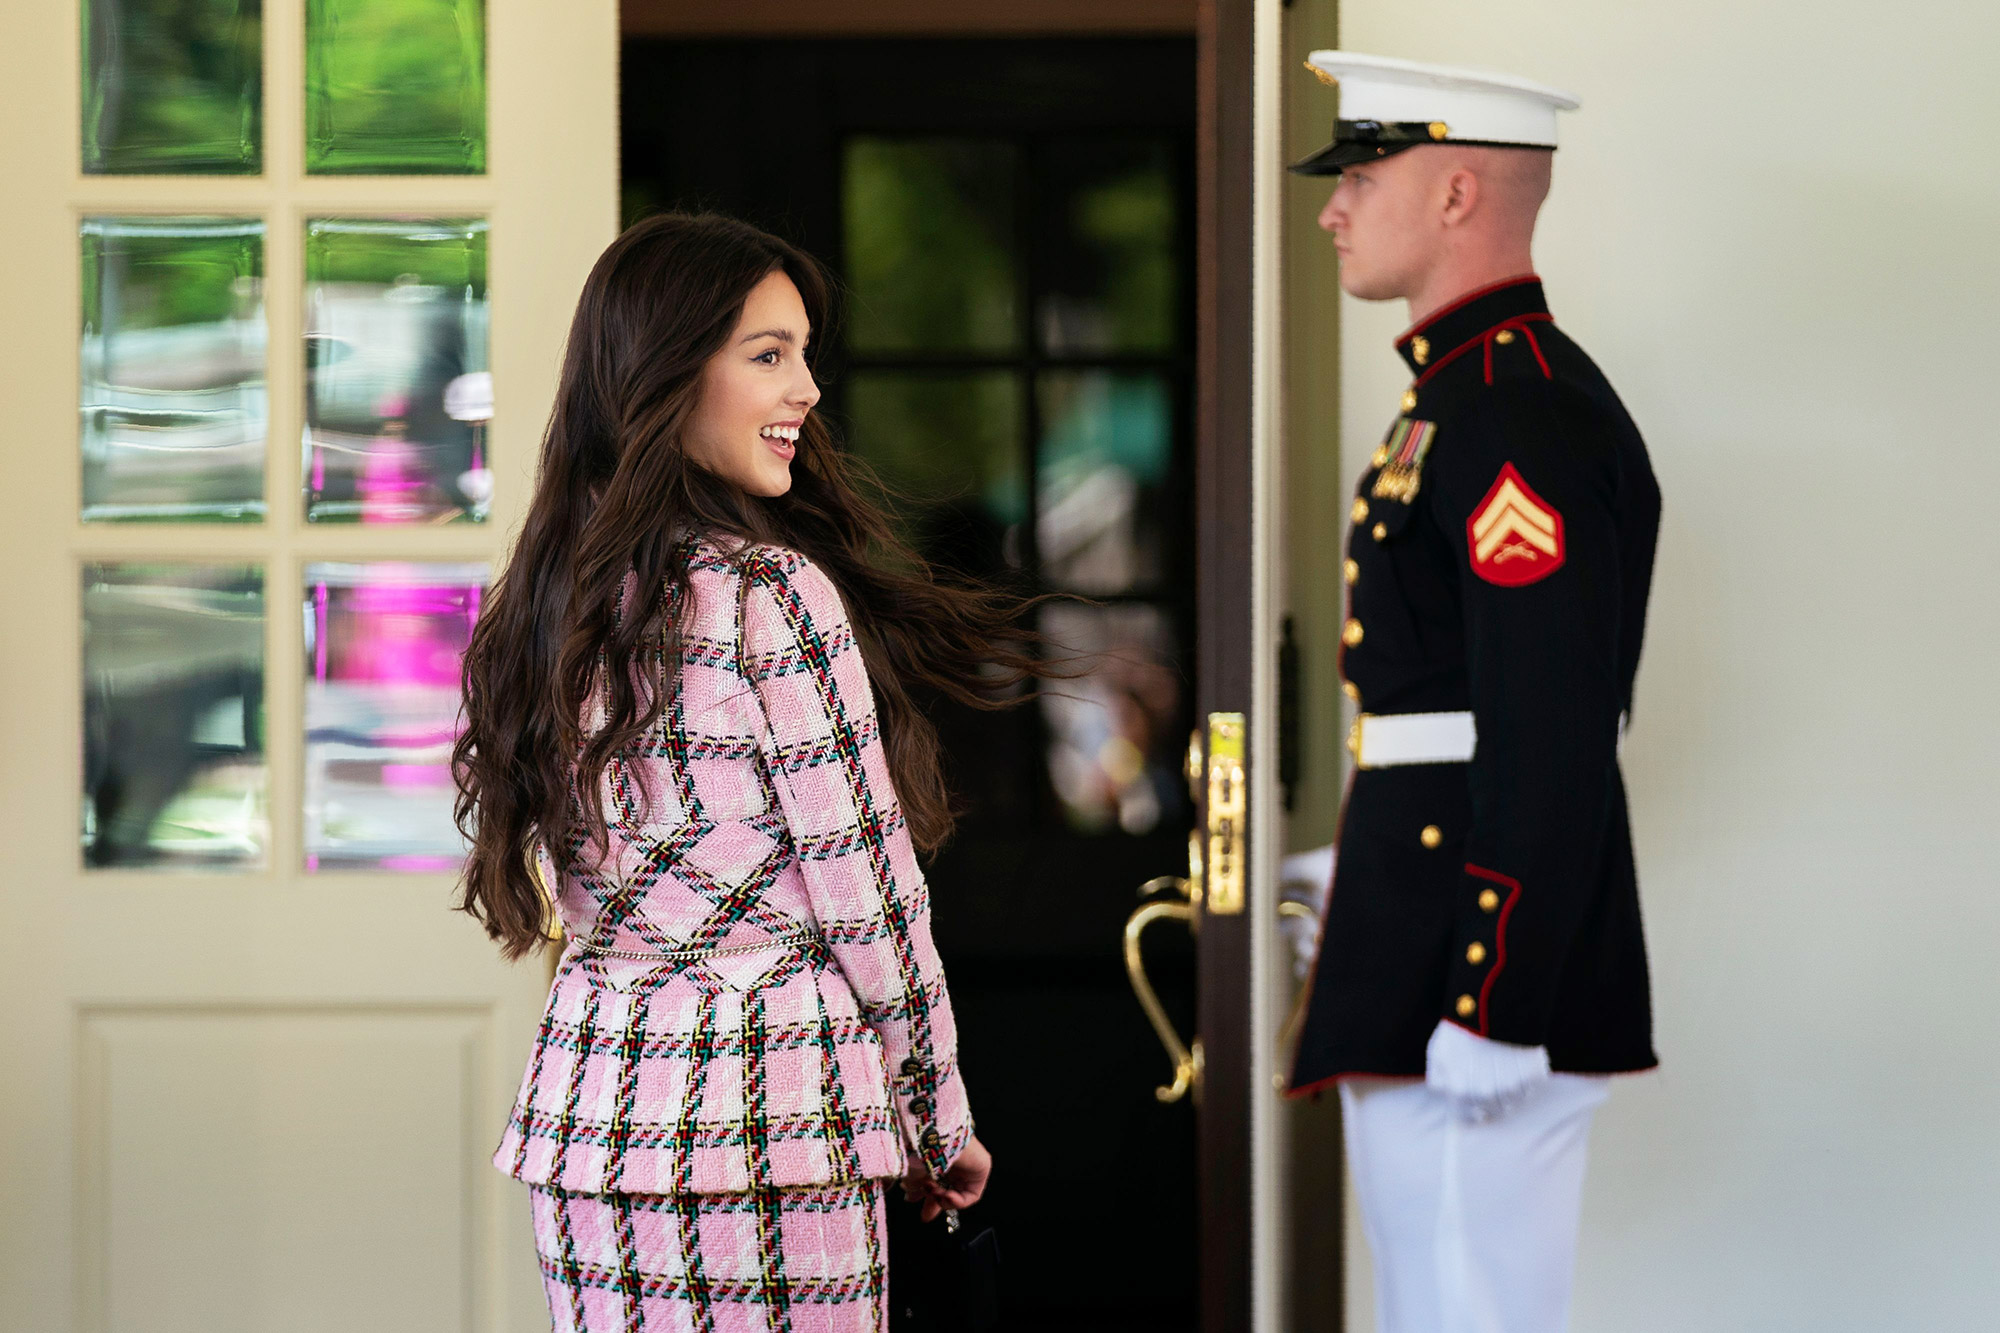 Pop Star Olivia Rodrigo Arrives At The White House To Record Videos Promoting Covid Vaccinations